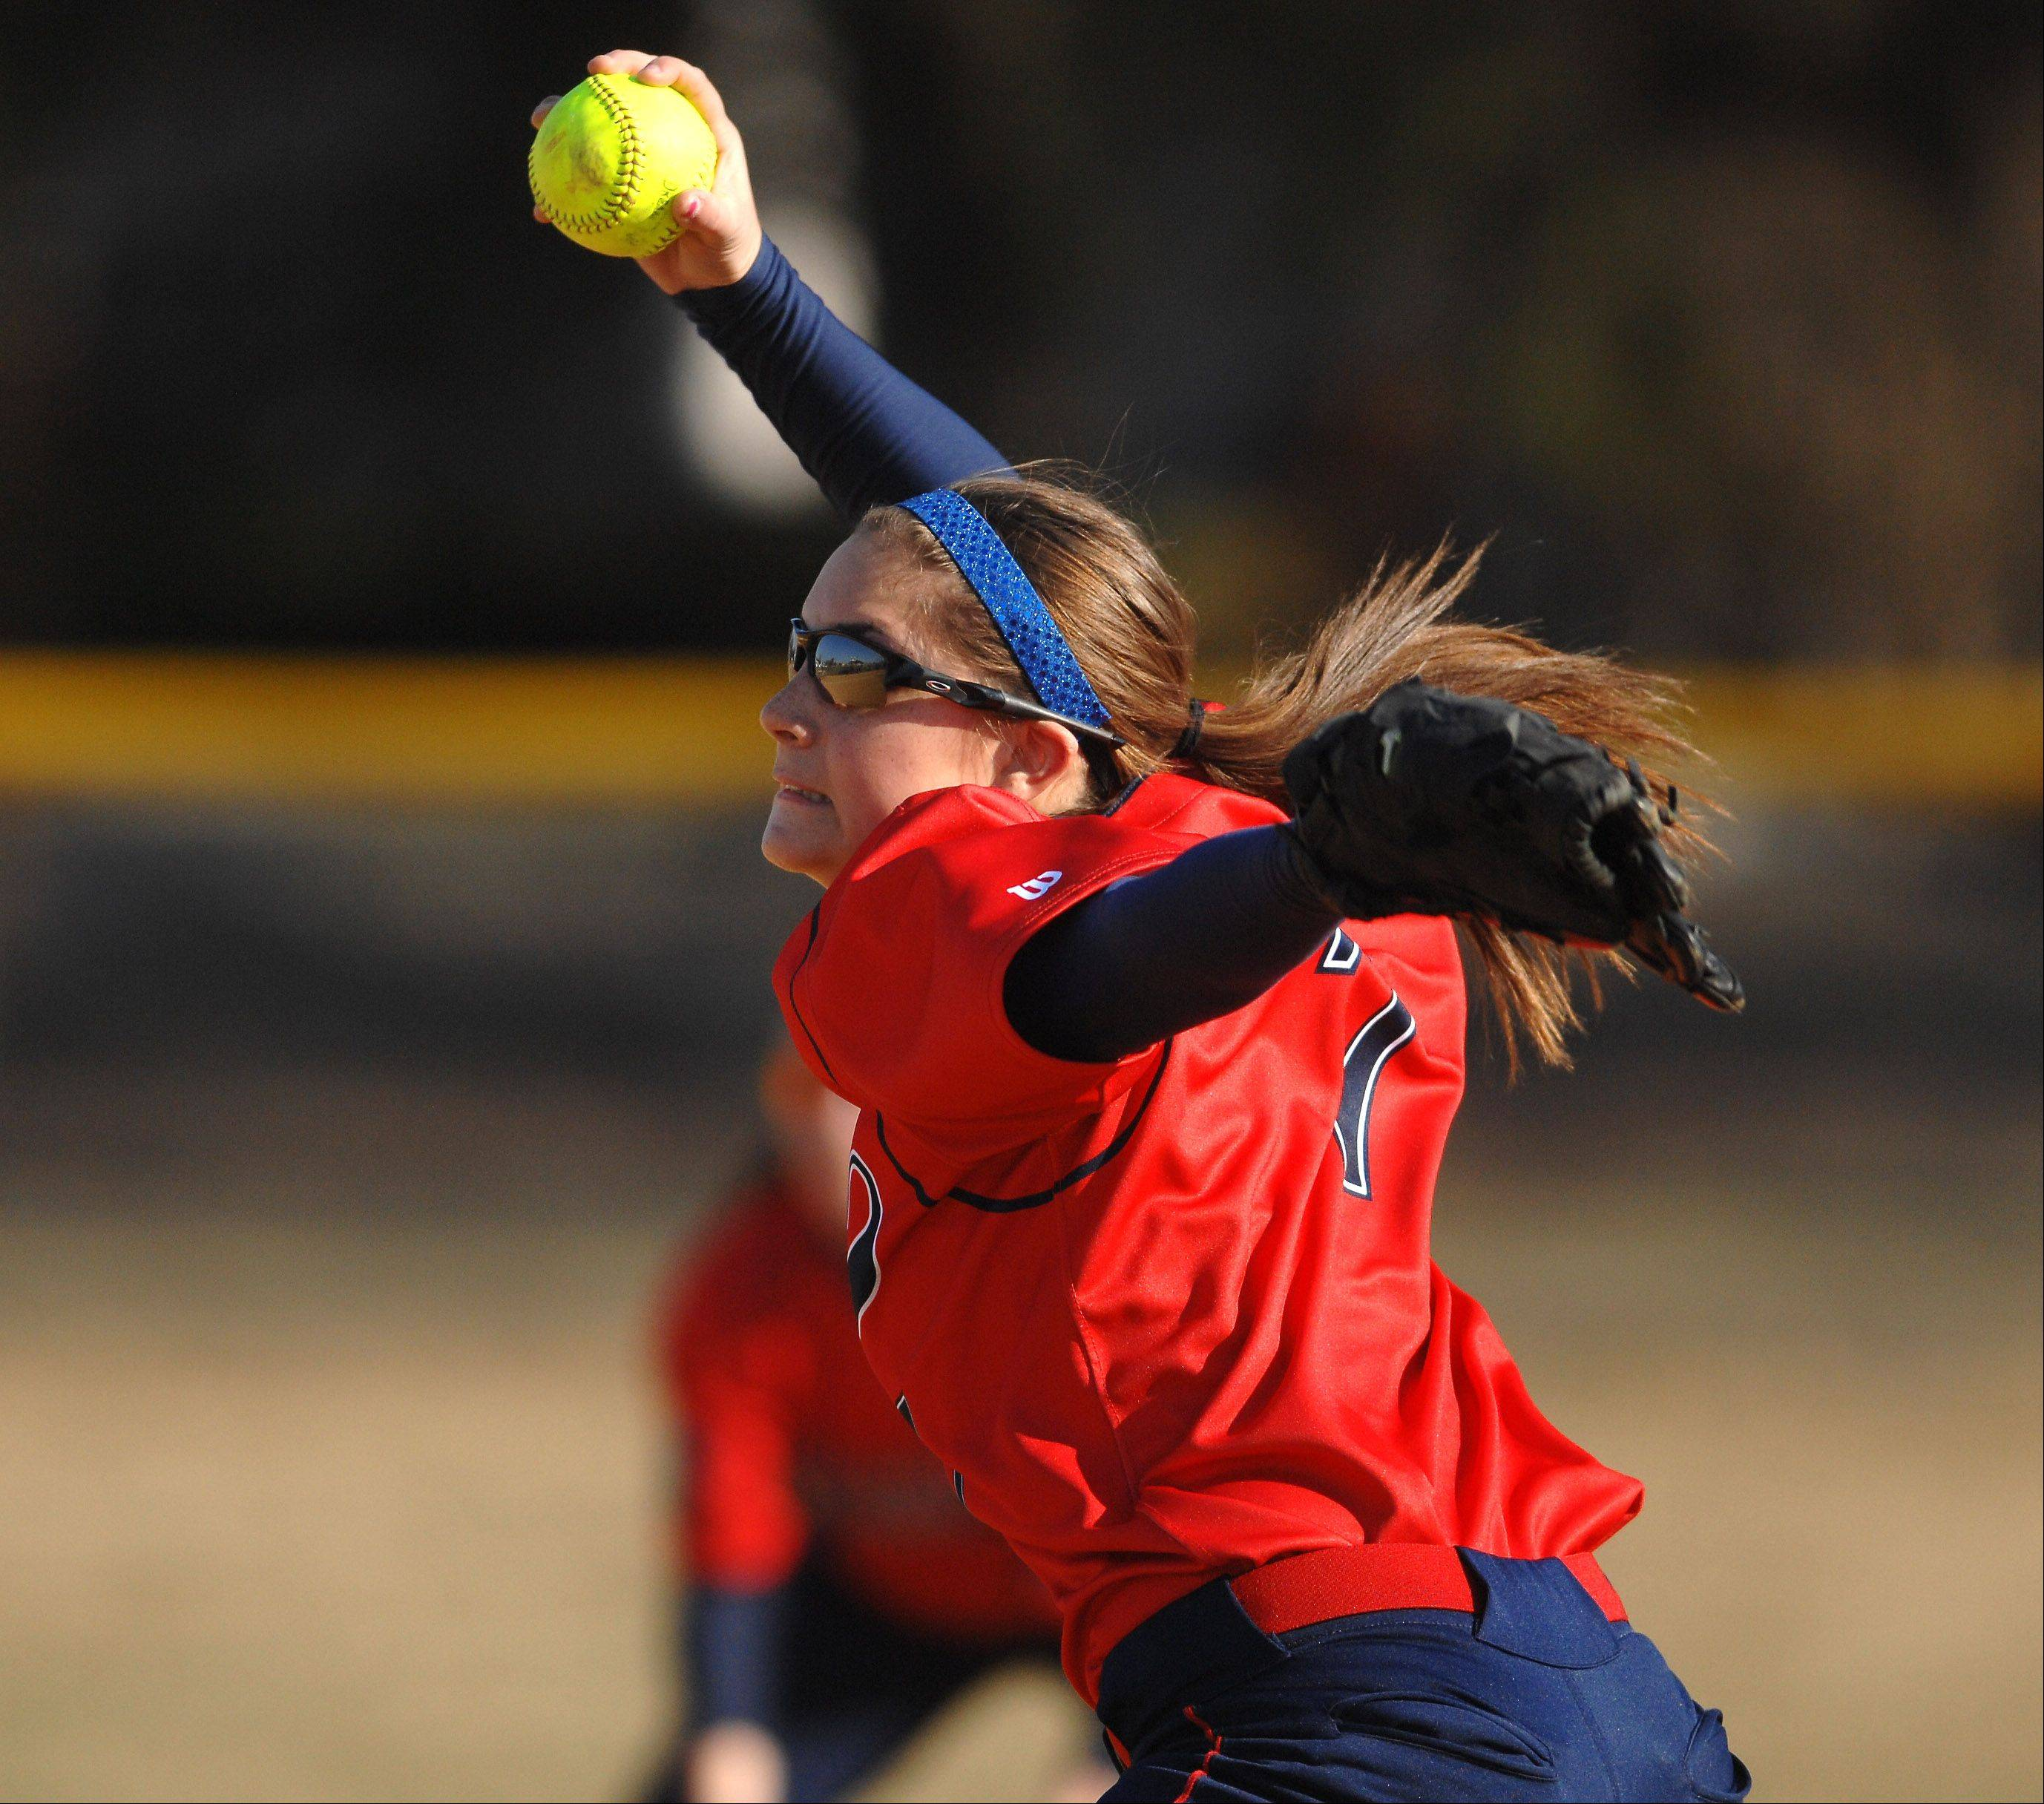 West Aurora's Kaylee Hayton delivers a pitch to a Rosary batter during Thursday's game in Aurora.